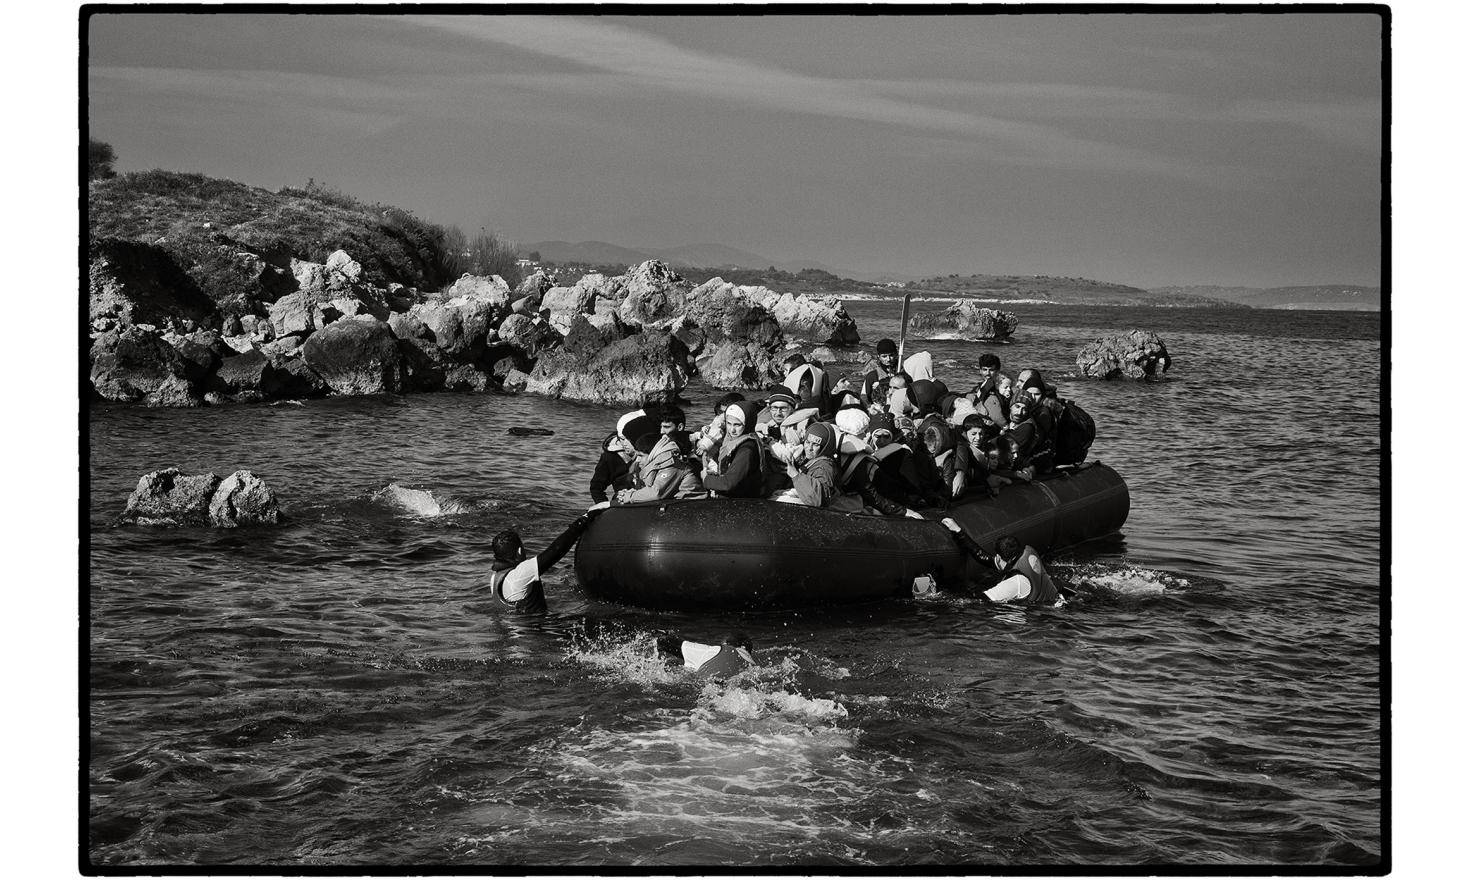 Lesbos, Greece. The Turkish authorities estimate that almost 850000 migrants, mainly Syrians, Afghans and Iraqis, tried to cross to Greece from the Turkish coast in 2015. Hundreds of people arrive on the beaches of the Greek islands every day.